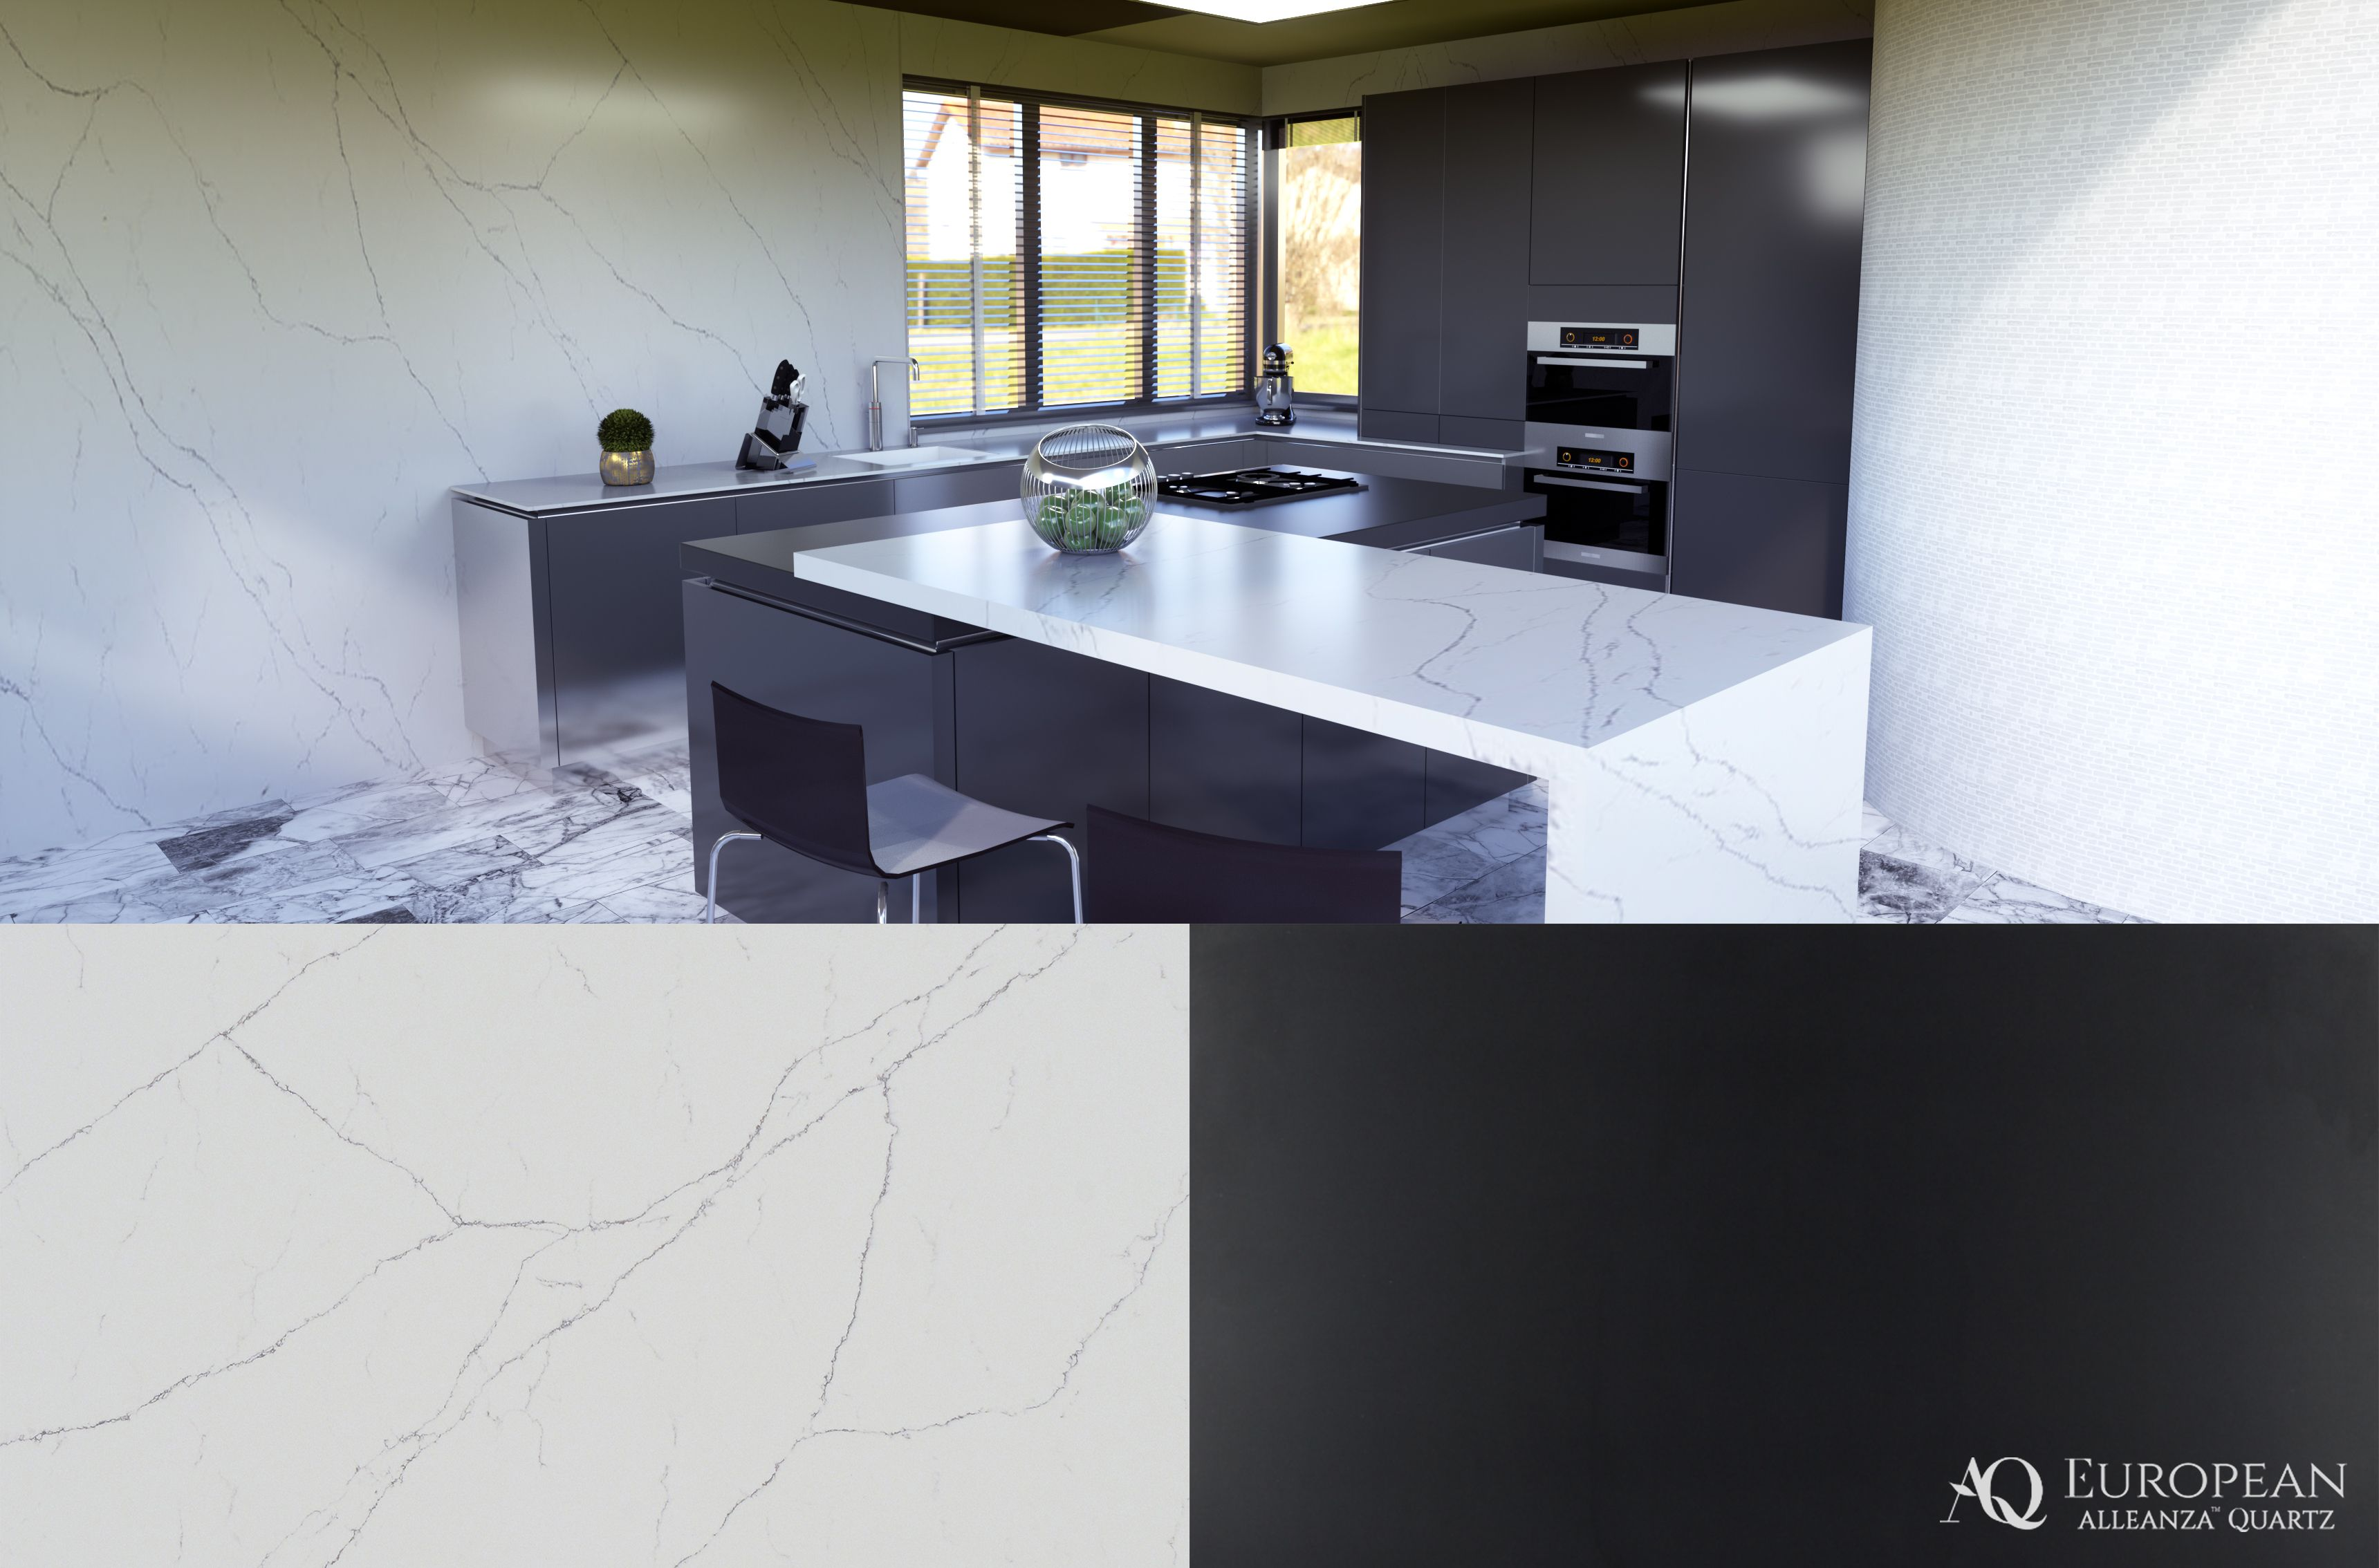 Seen Here Is A Kitchen Design Featuring Our New Alleanza Quartz